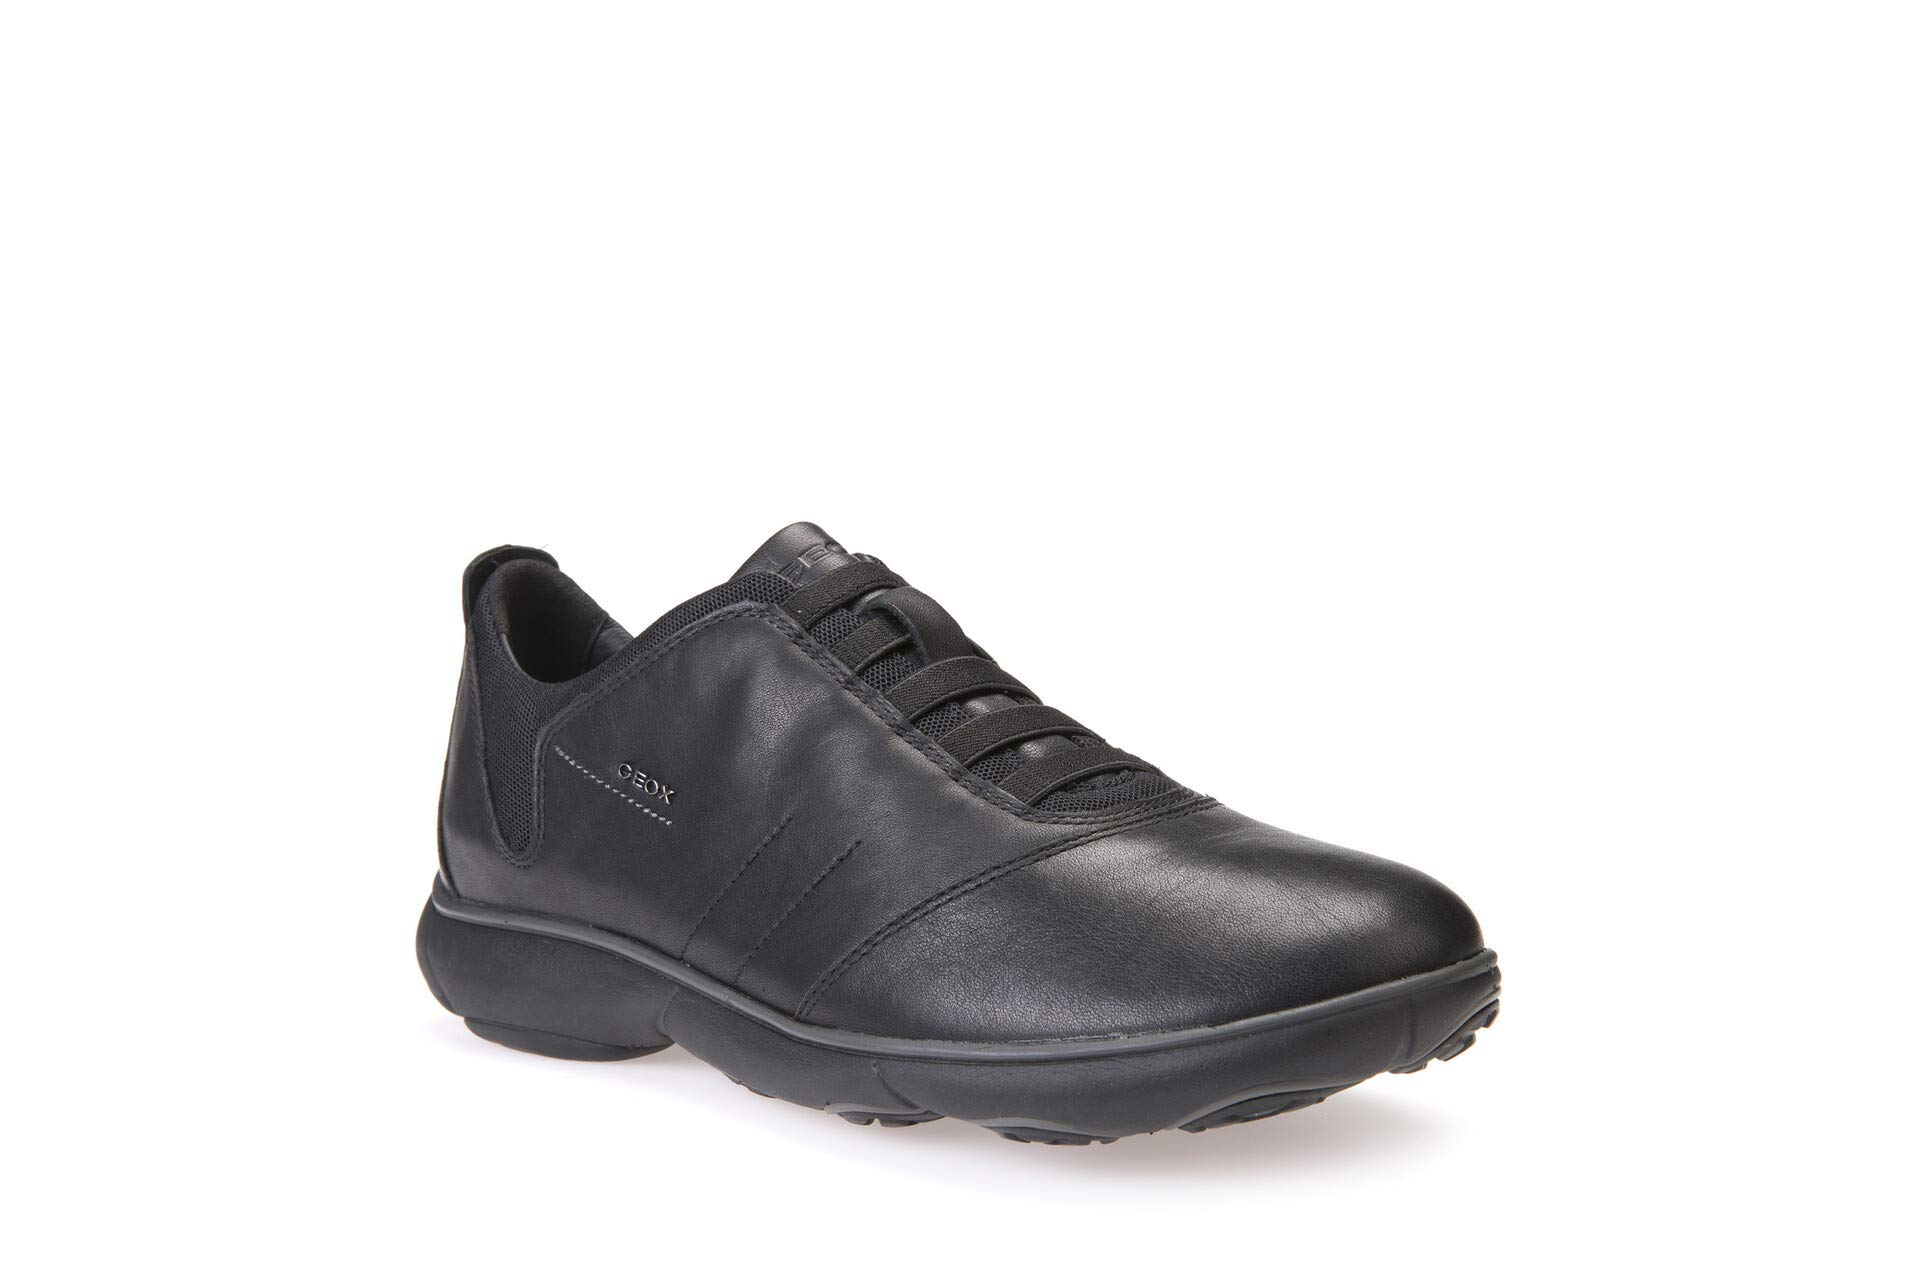 Geox U Nebula B Men Low Top Trainers Price in UAE